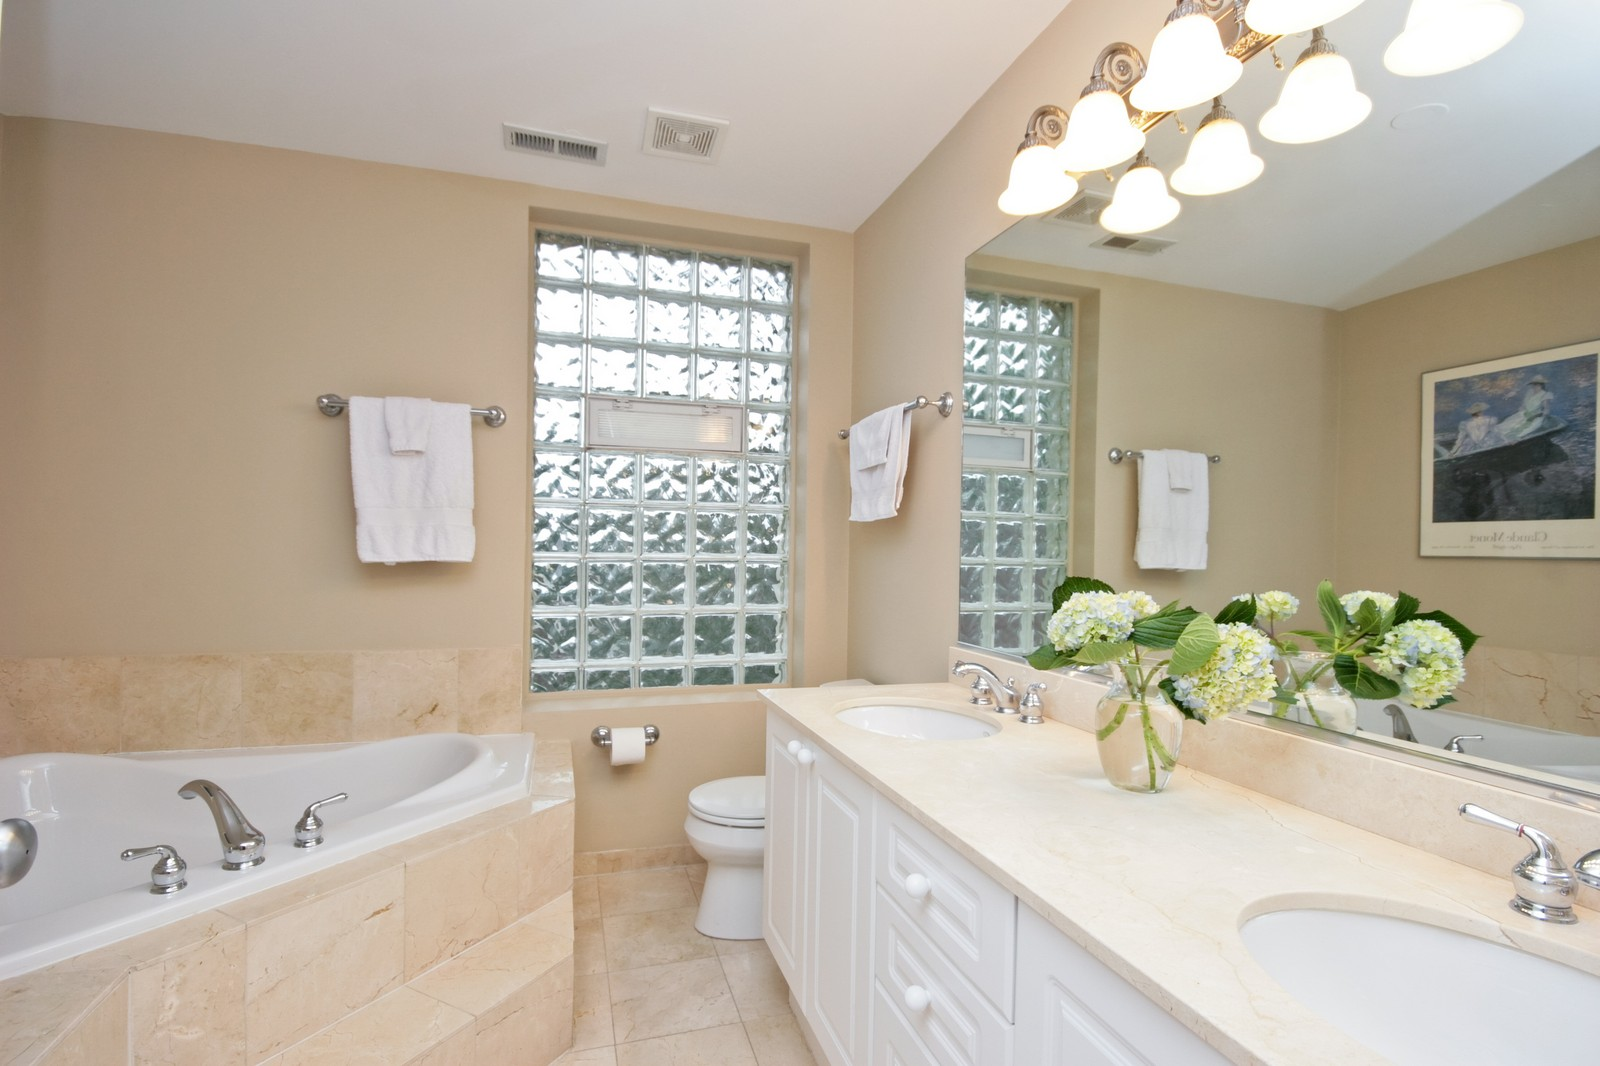 Real Estate Photography - 3705 N Paulina, Unit 3, Chicago, IL, 60613 - Master Bathroom - Oversized glass shower w/ bench